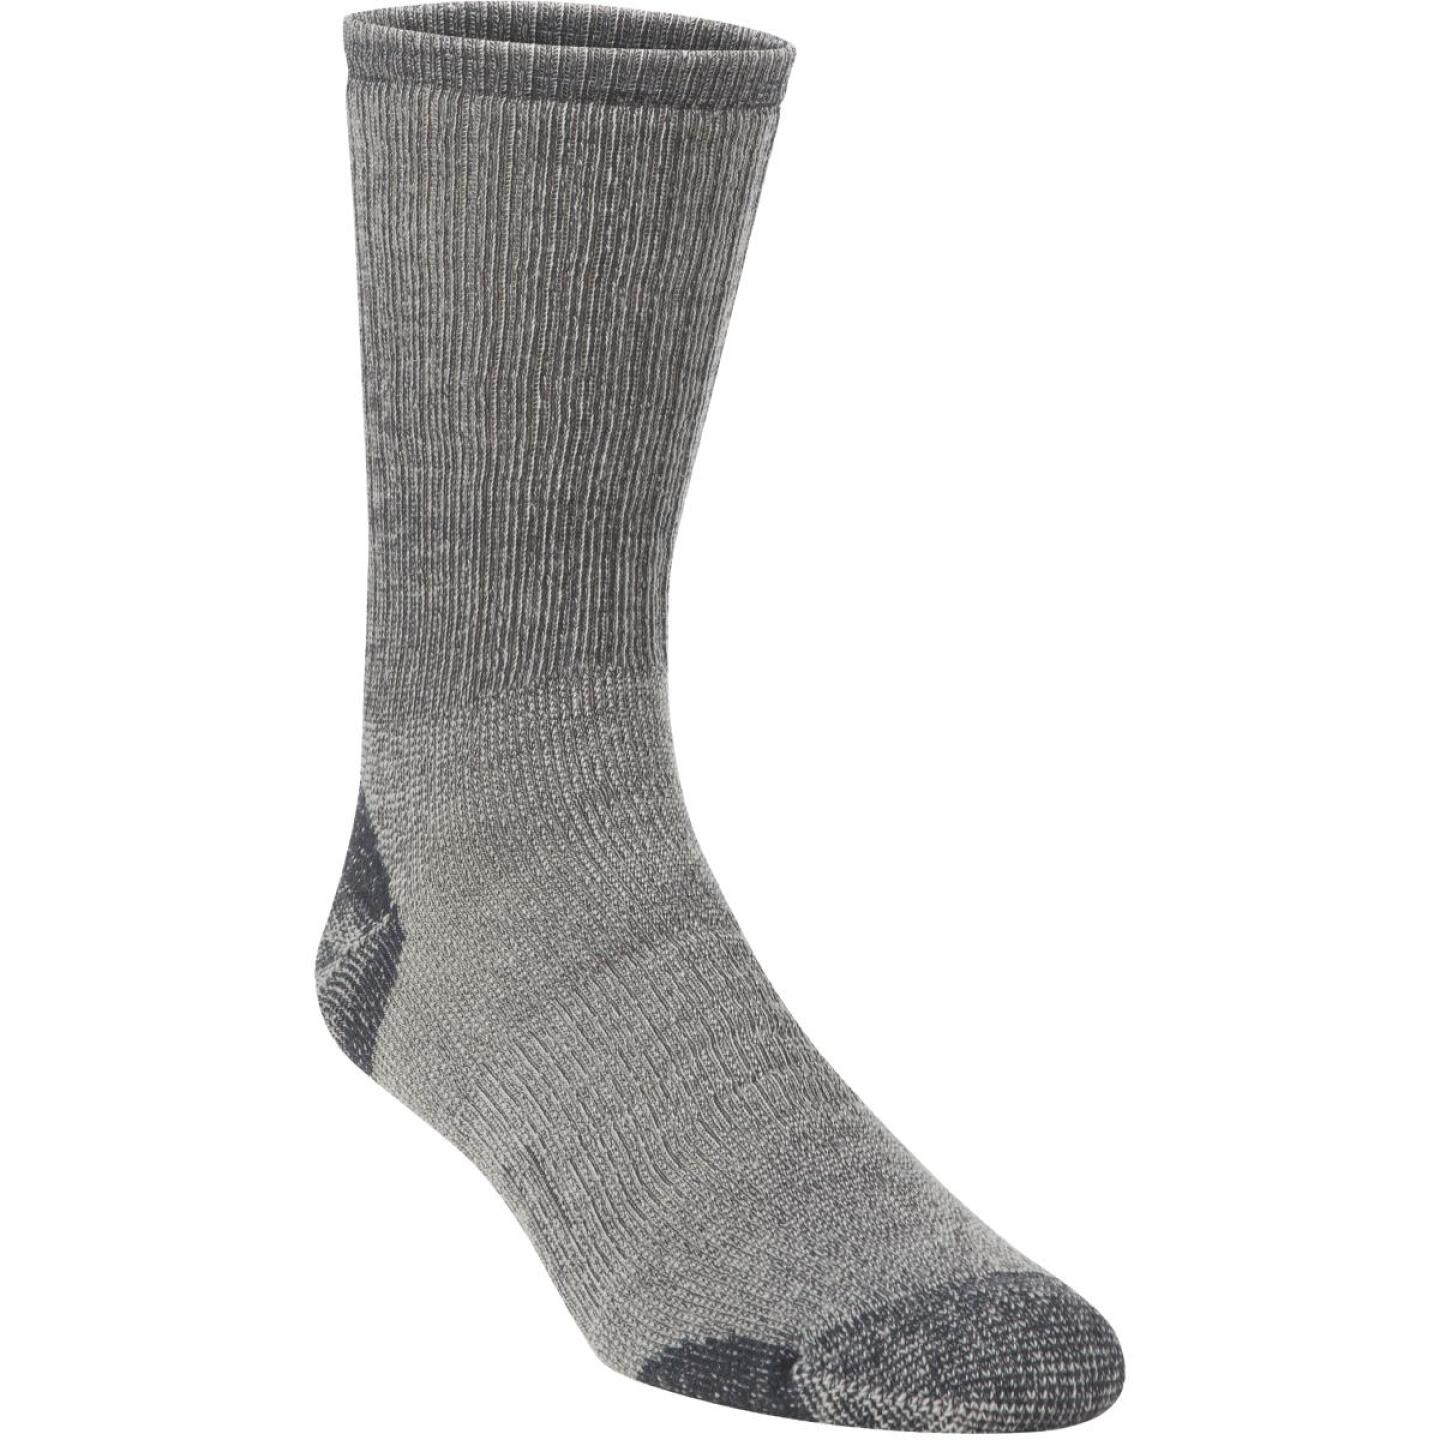 Hiwassee Trading Company Men's Large Charcoal Medium Weight Hiking Crew Sock Image 1